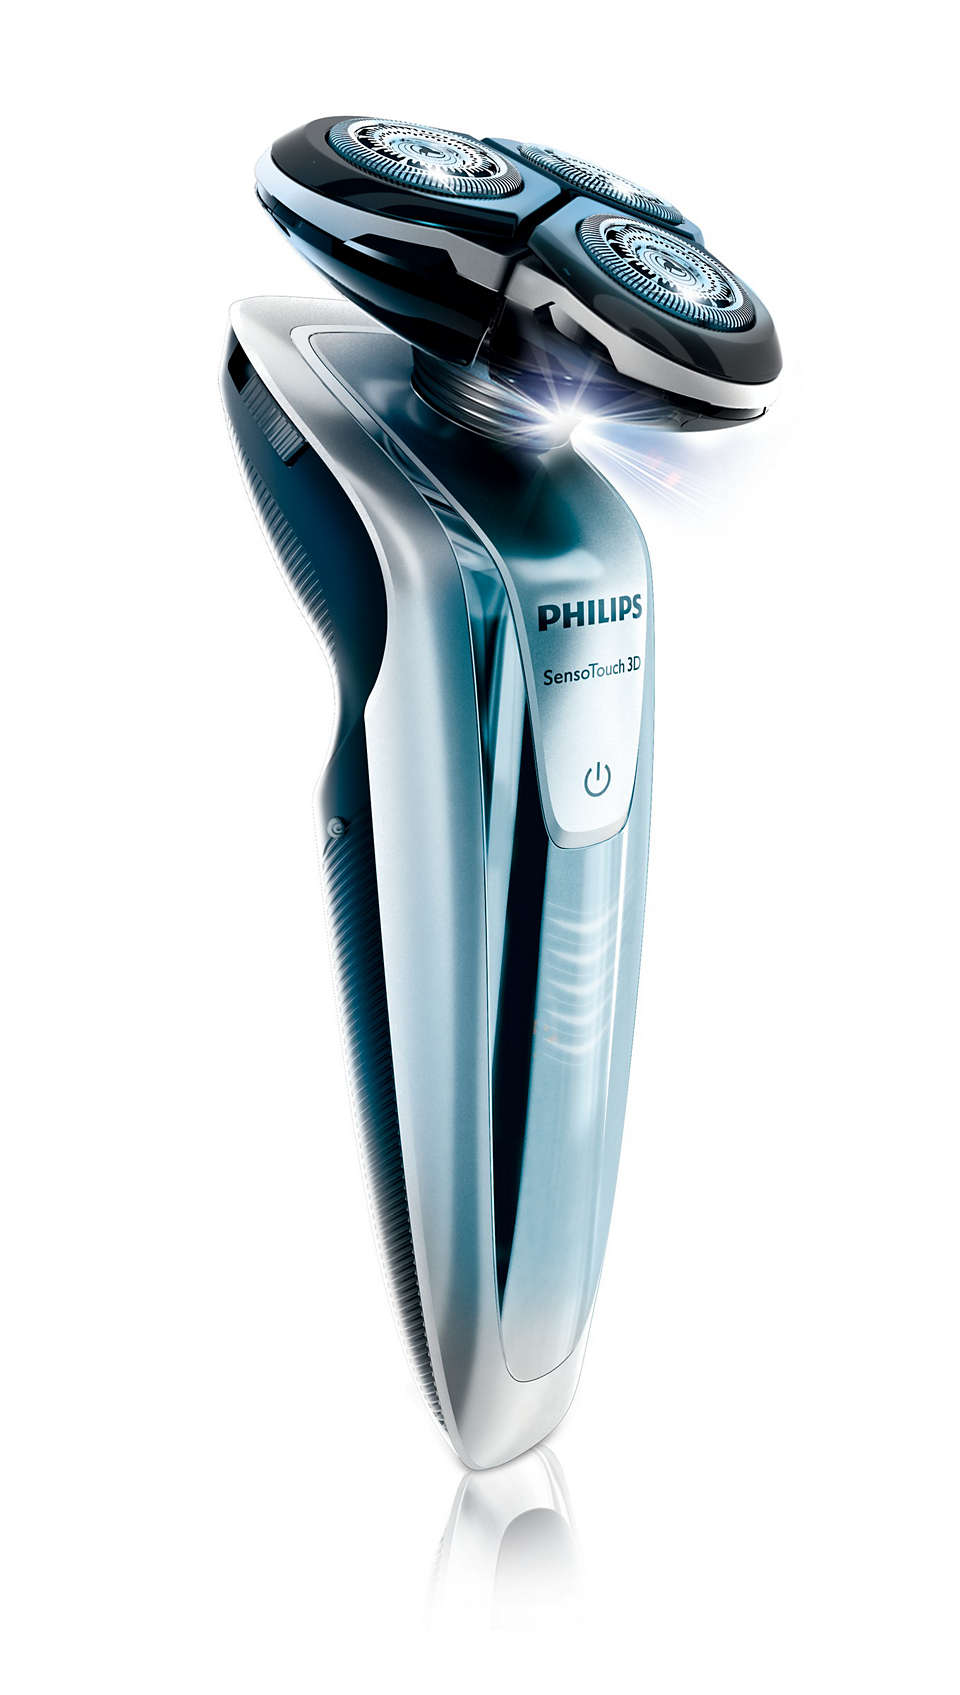 SensoTouch 3D - Ultimate shaving experience